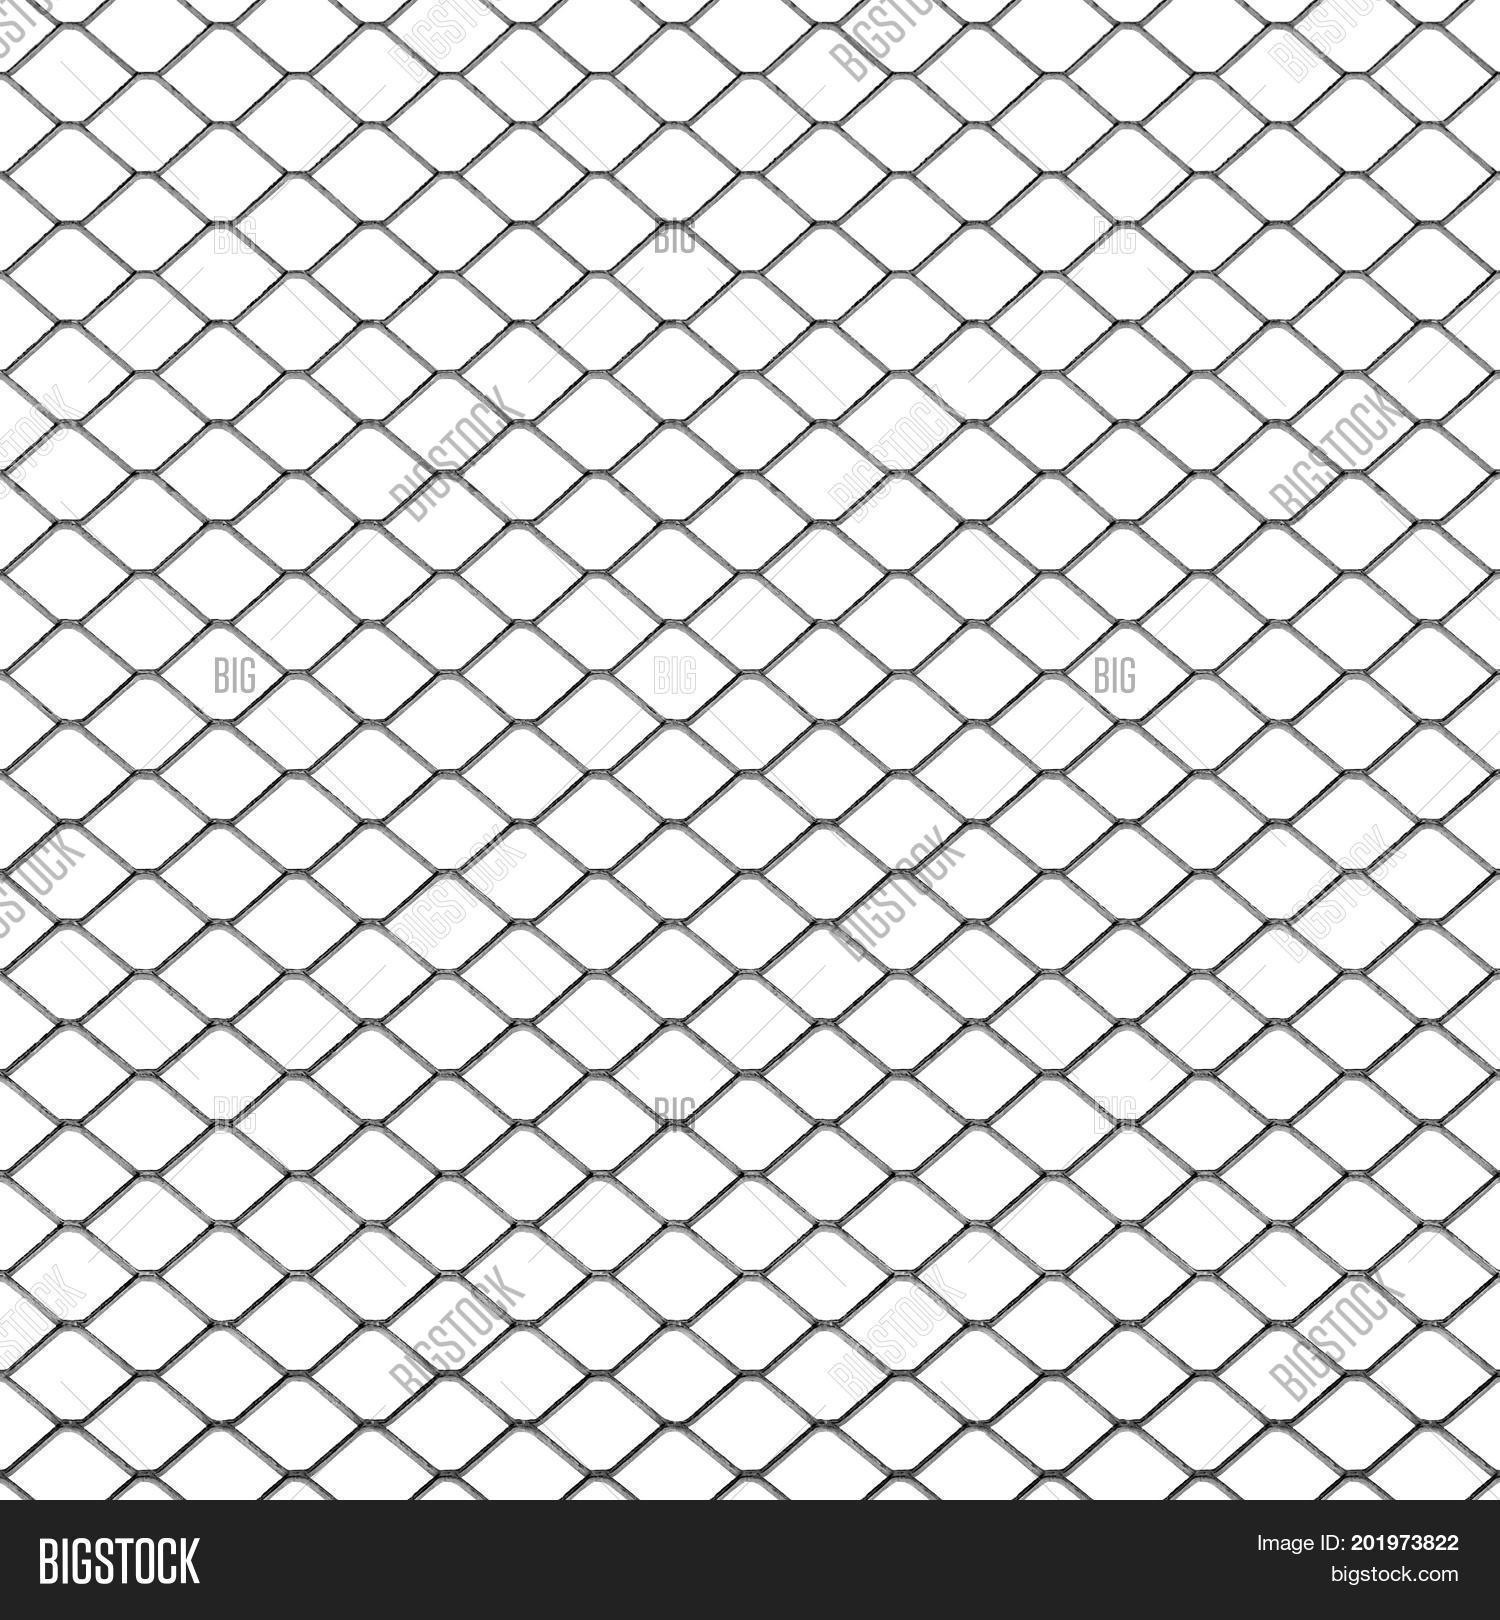 Wire Mesh Metal Chain Image Amp Photo Free Trial